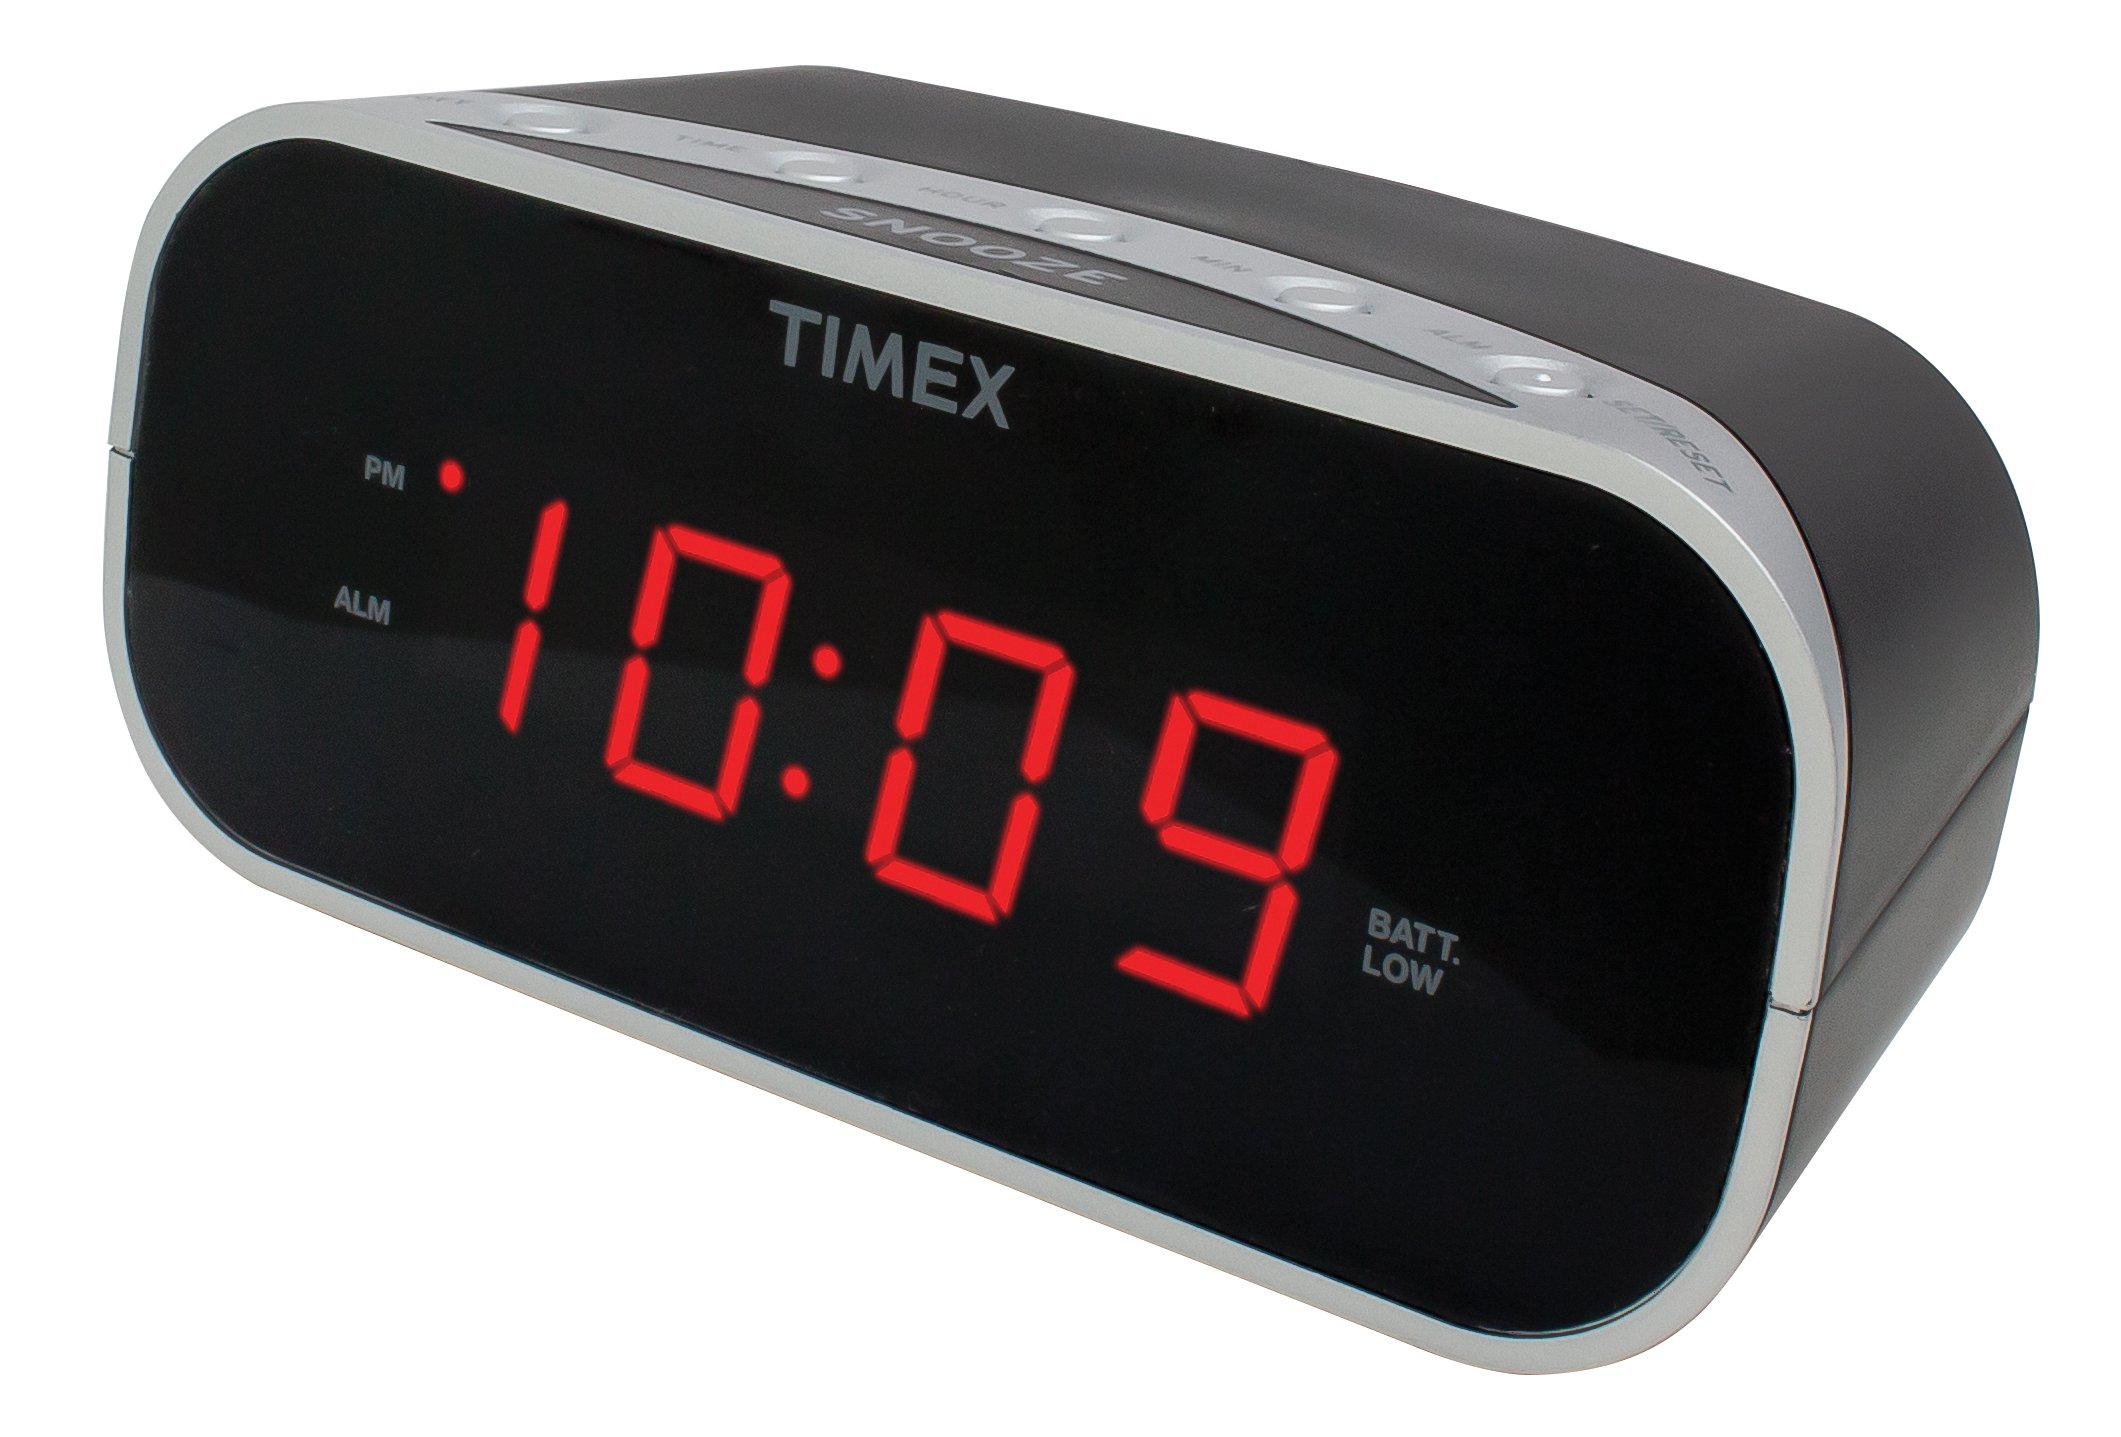 Timex T121B Alarm Clock with 0.7-Inch Red Display (Black) by Timex